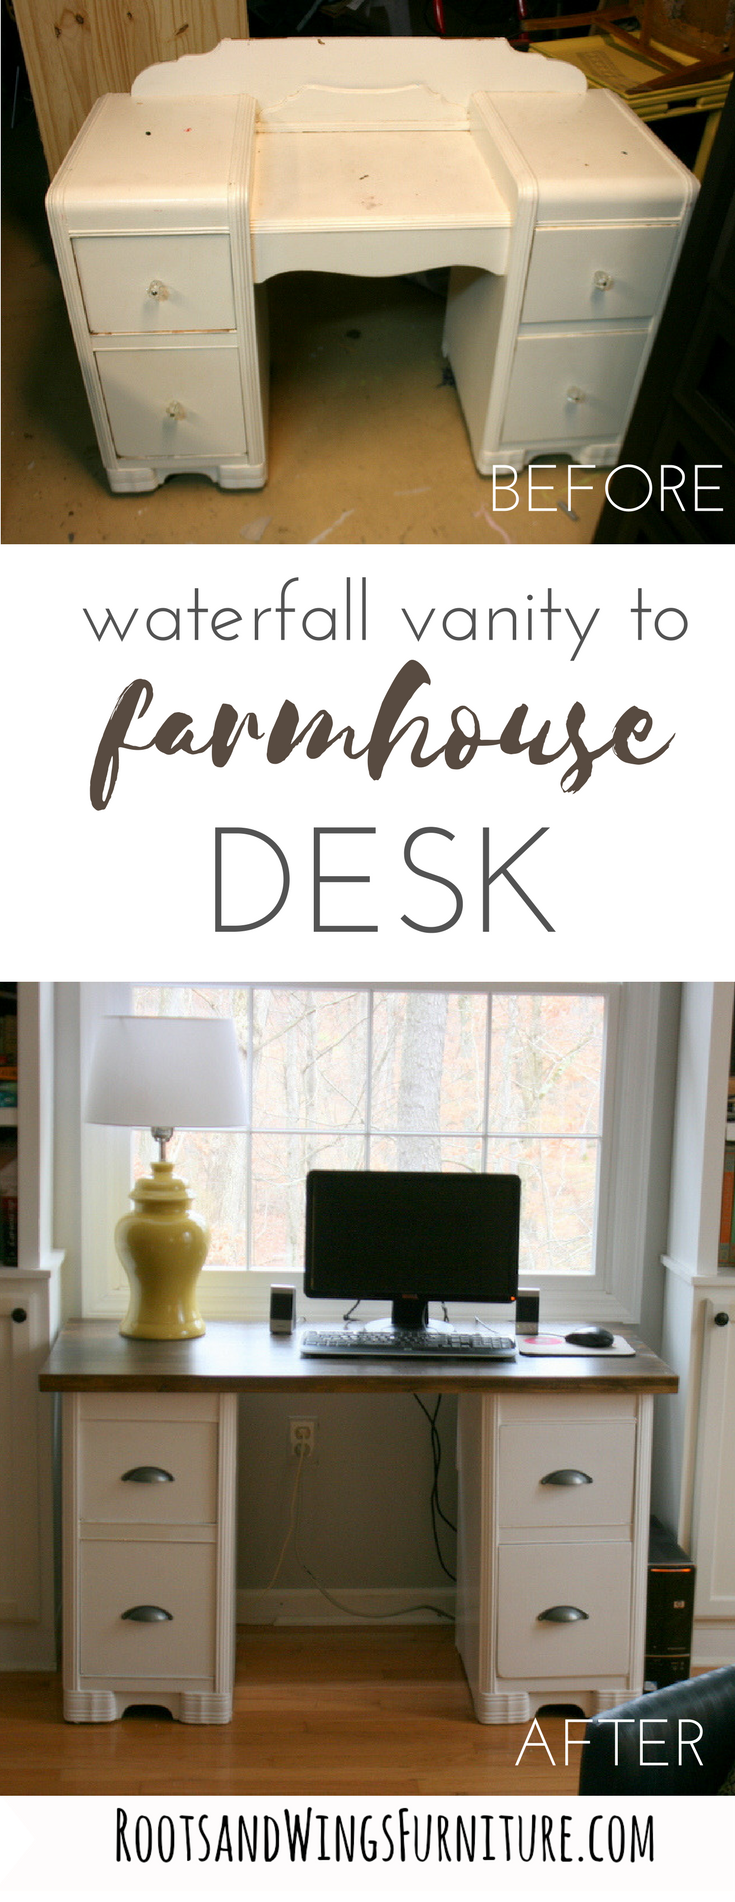 http://www.rootsandwingsfurniture.com/blog/waterfalldesk